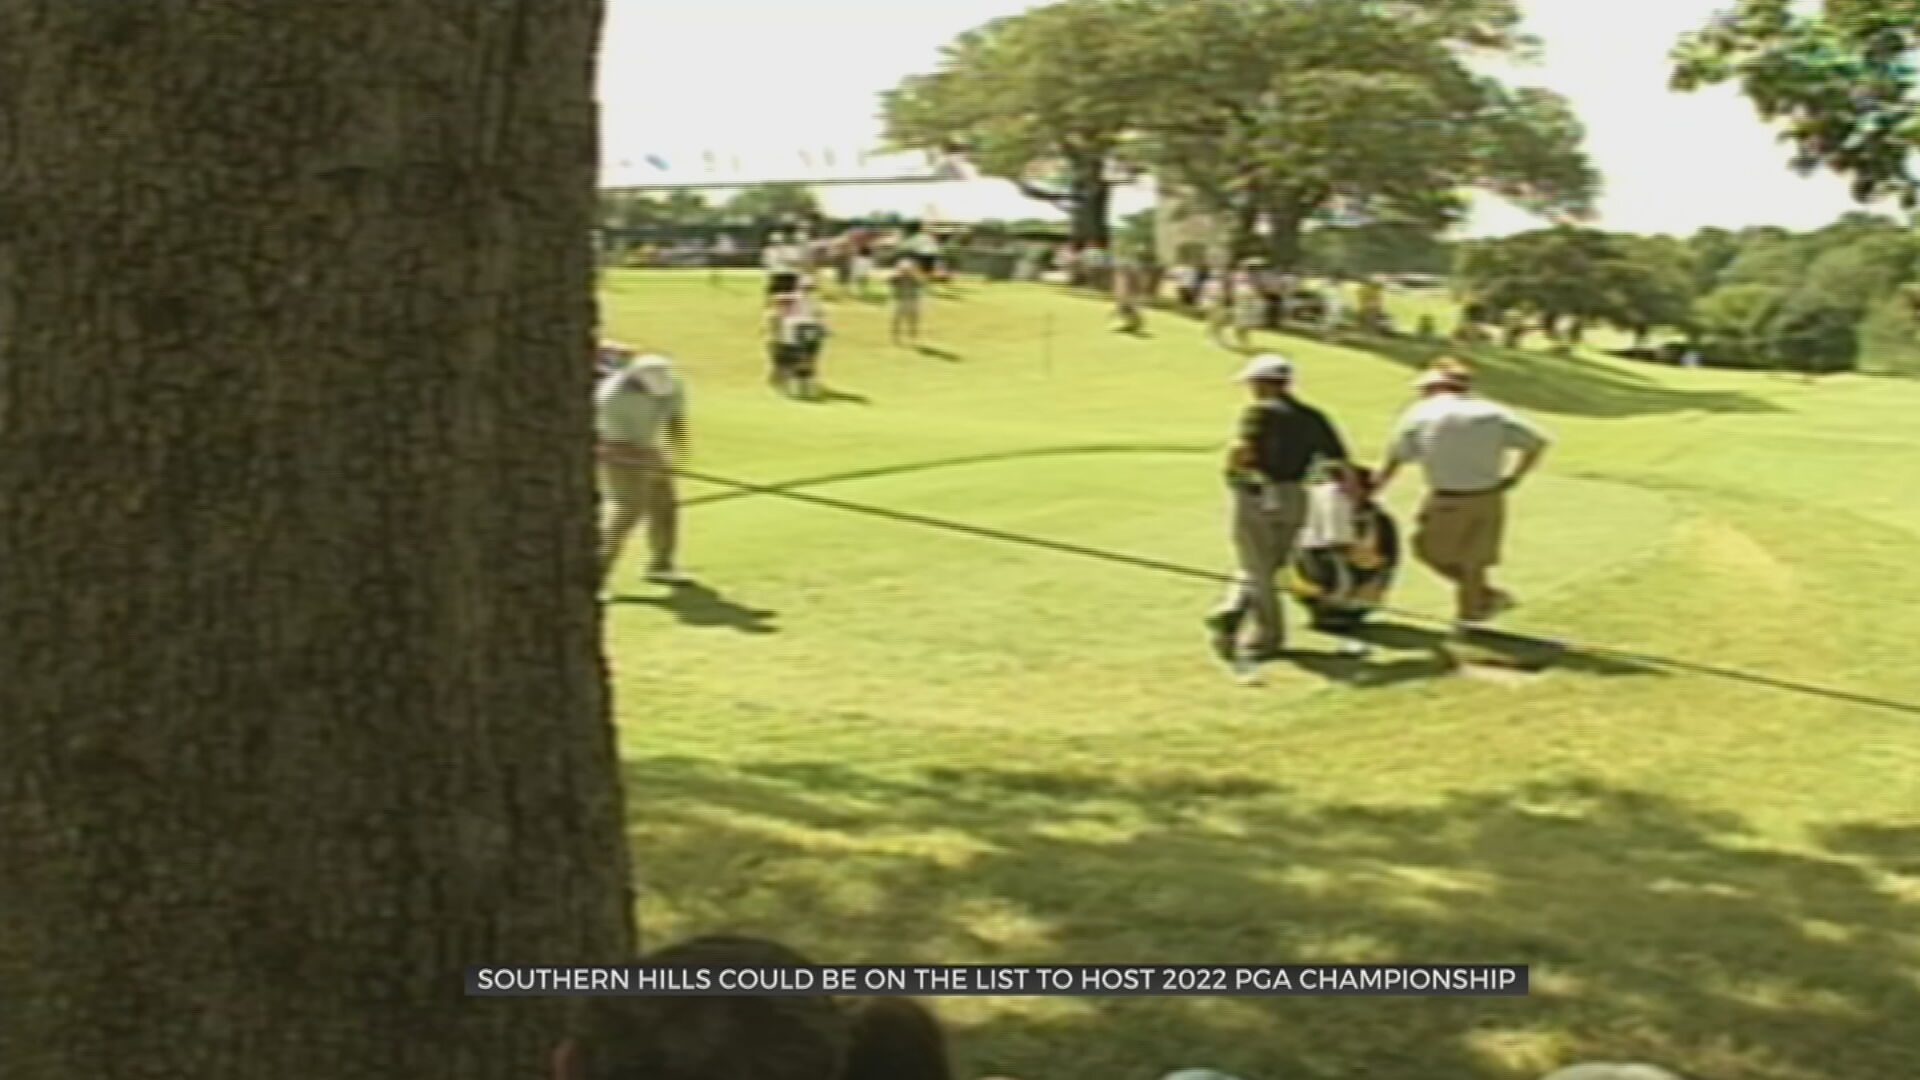 Southern Hills Could Be On List To Host 2022 PGA Championship